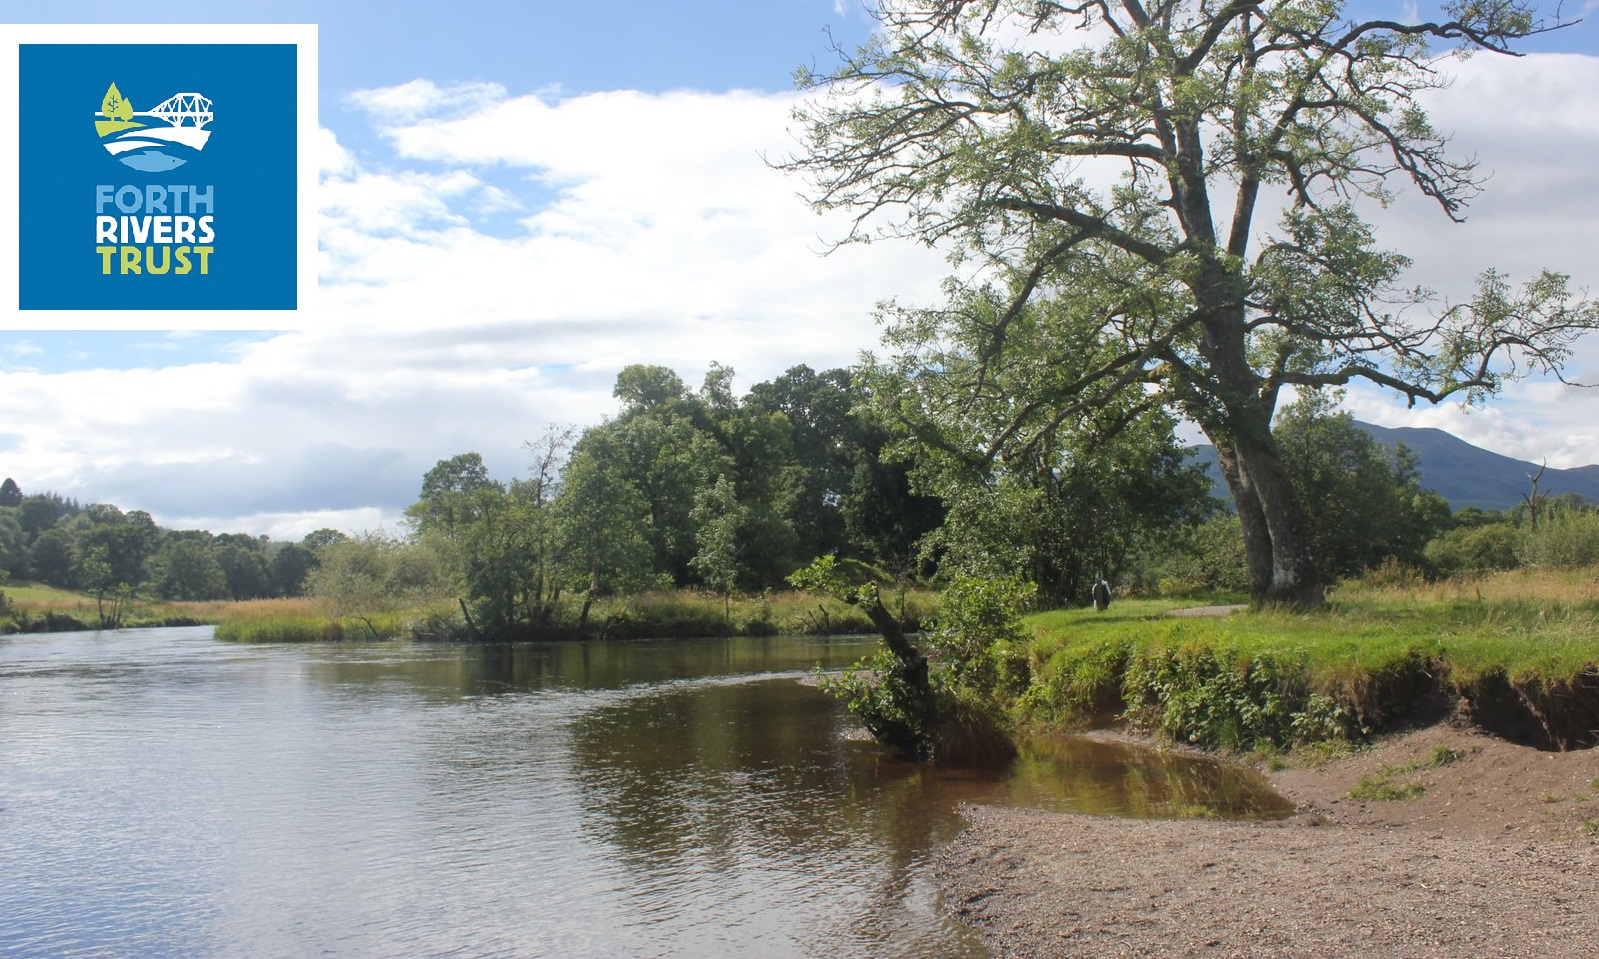 a-river-bank-with-trees